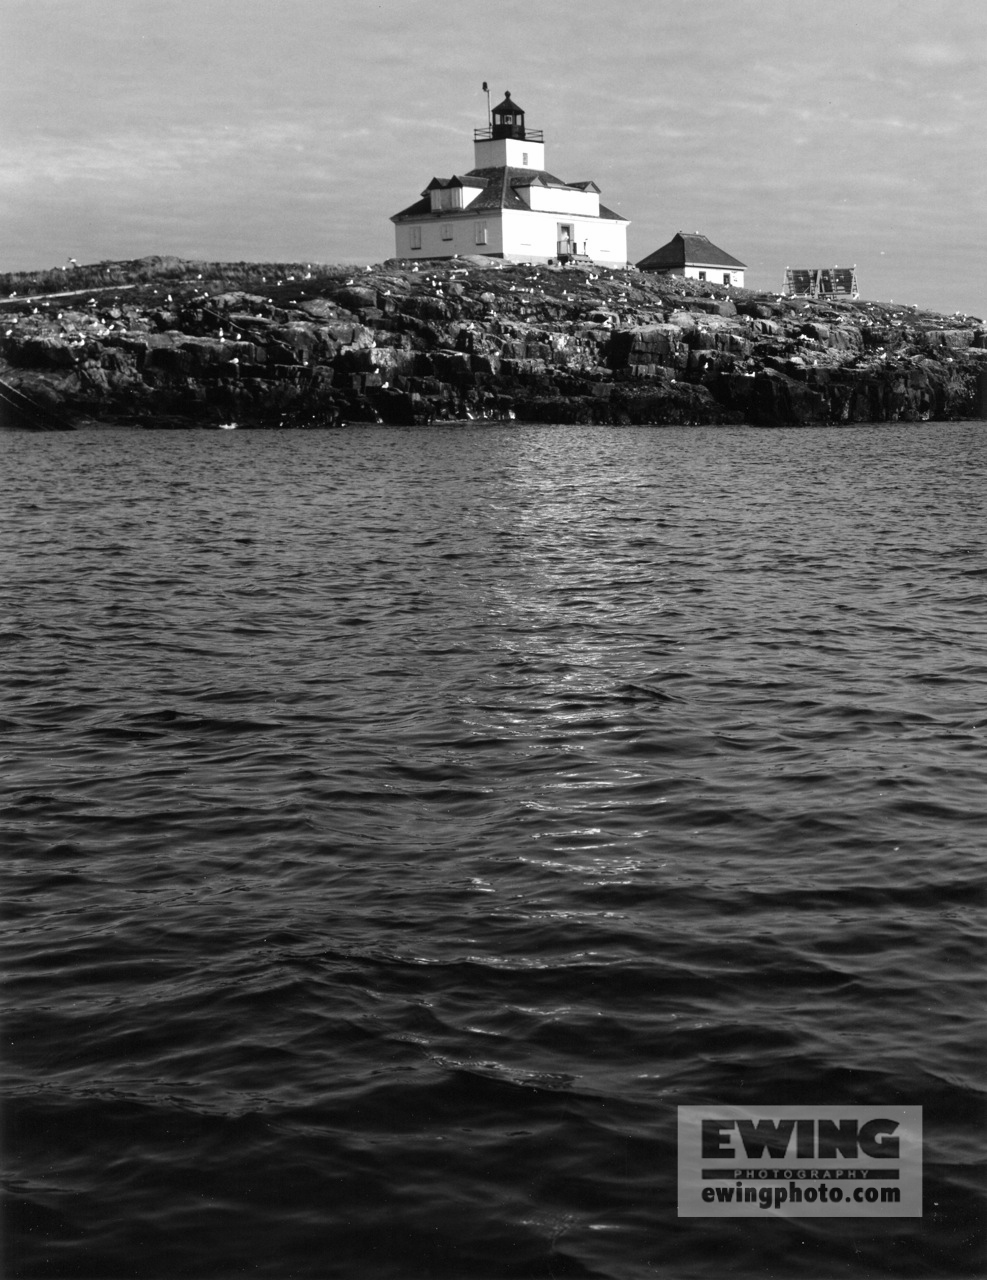 Egg Rock Light Frenchmans Bay, Maine